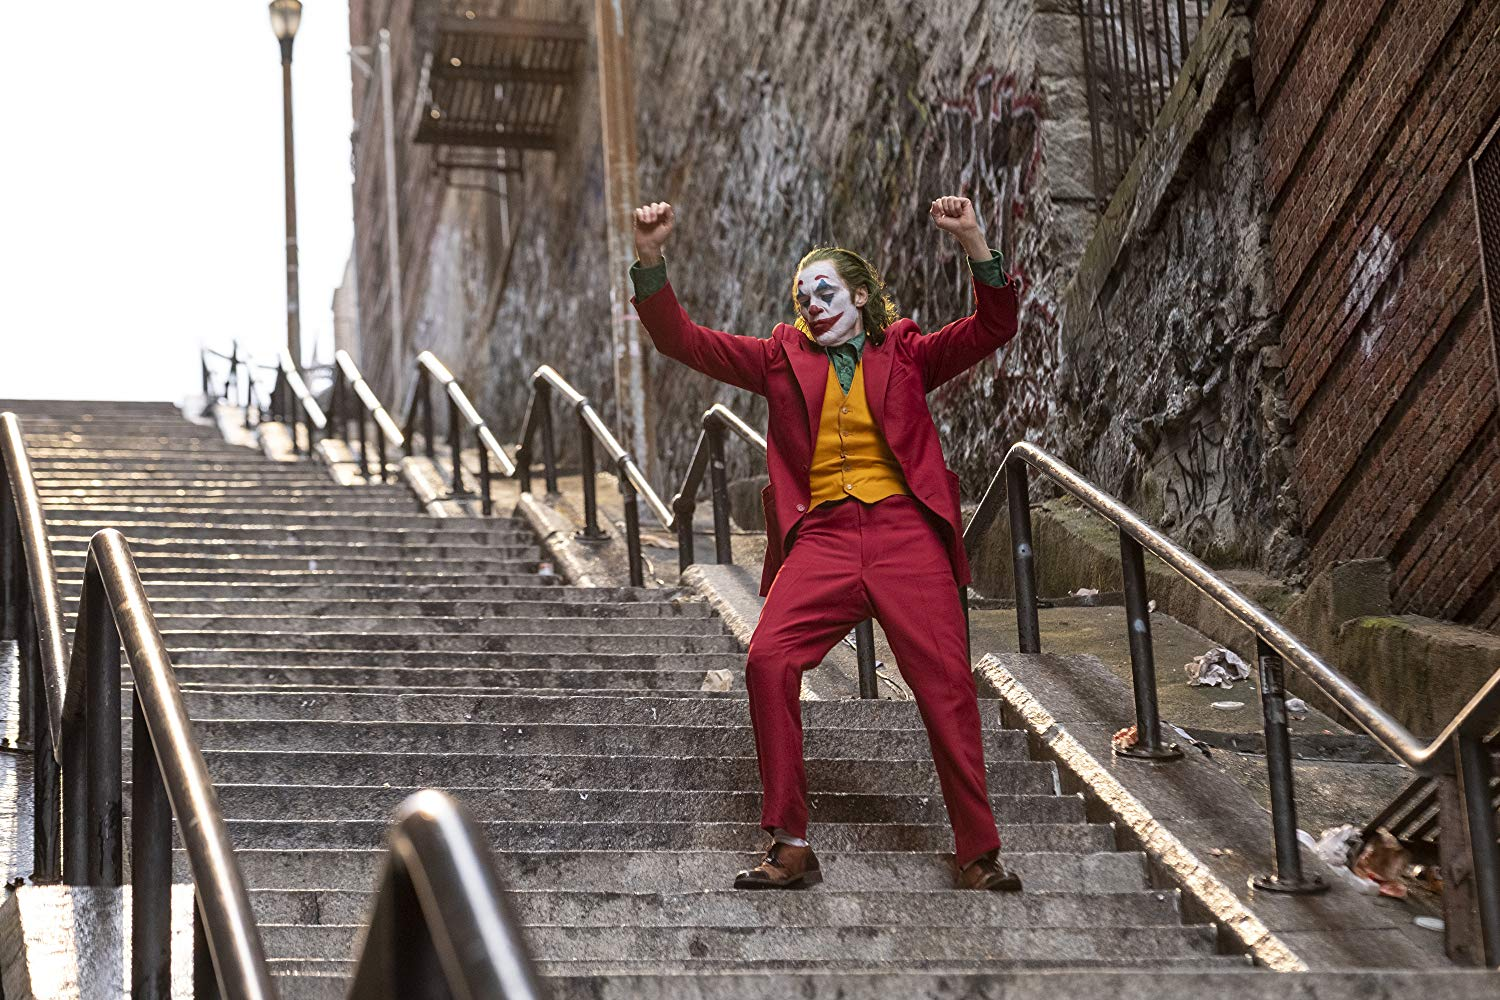 joker currently ranks in top 10 highest rated movies of all time on imdb